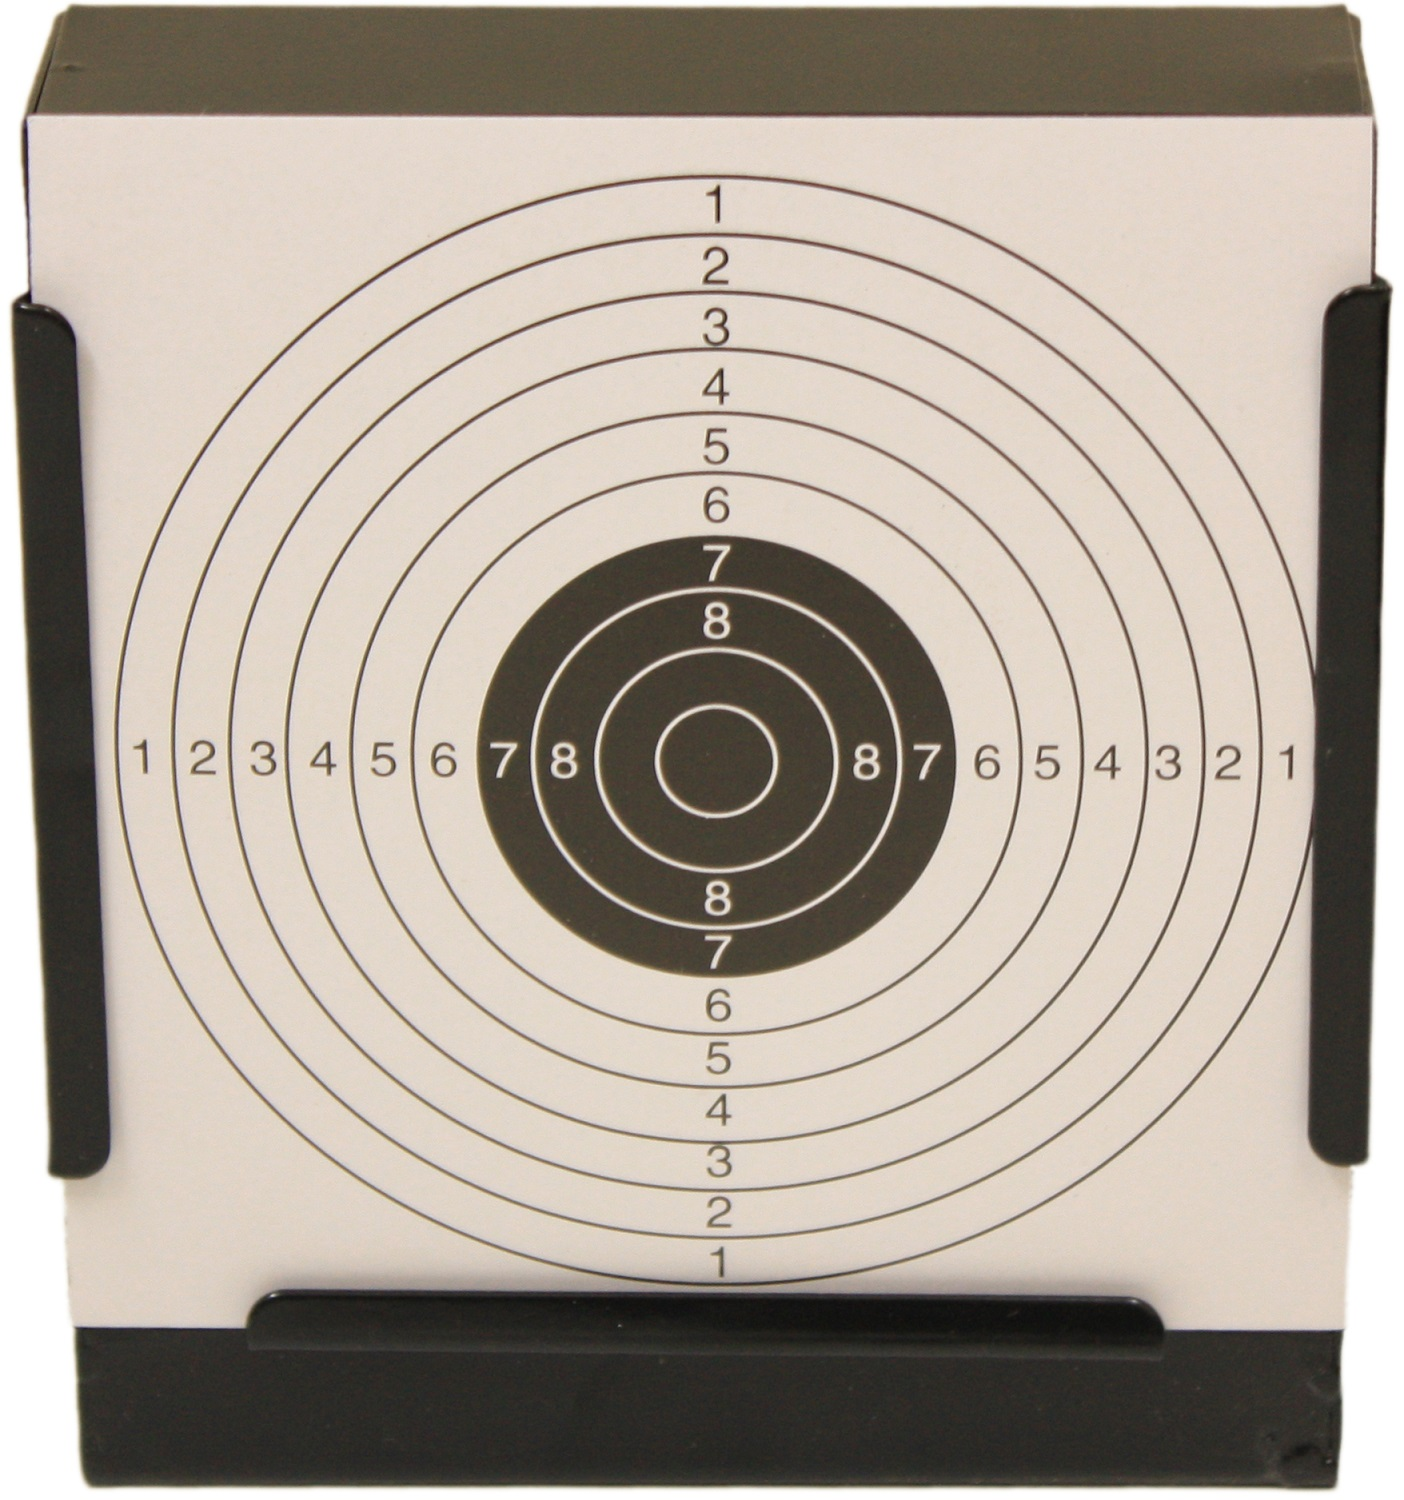 paper targets for shooting Qualification targets inc is a leading supplier of targets and firearms training accessories 866-498-8228 paper silhouette targets,full color critical response targets,bullseye targets.